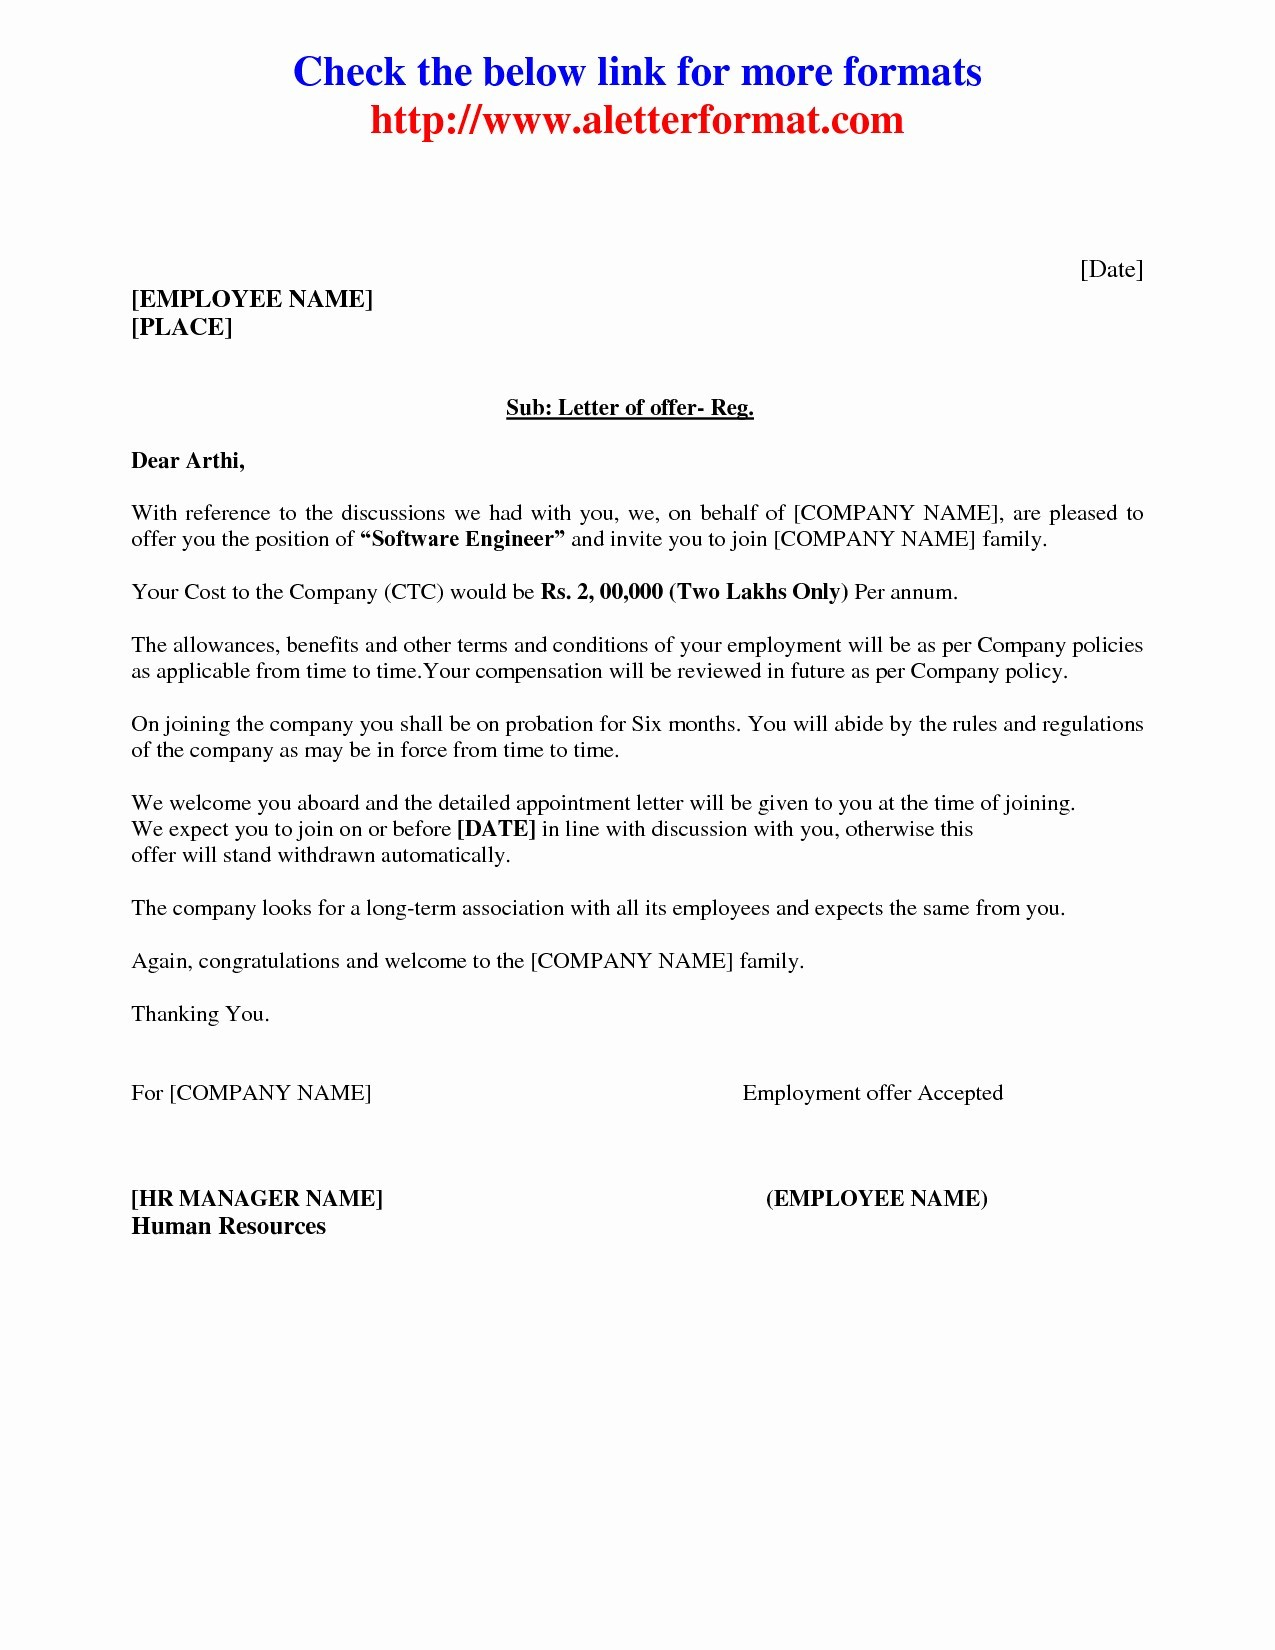 Job Offer Letter Template Free Download - Appointment Letter Sample In Word format India Copy Appointment